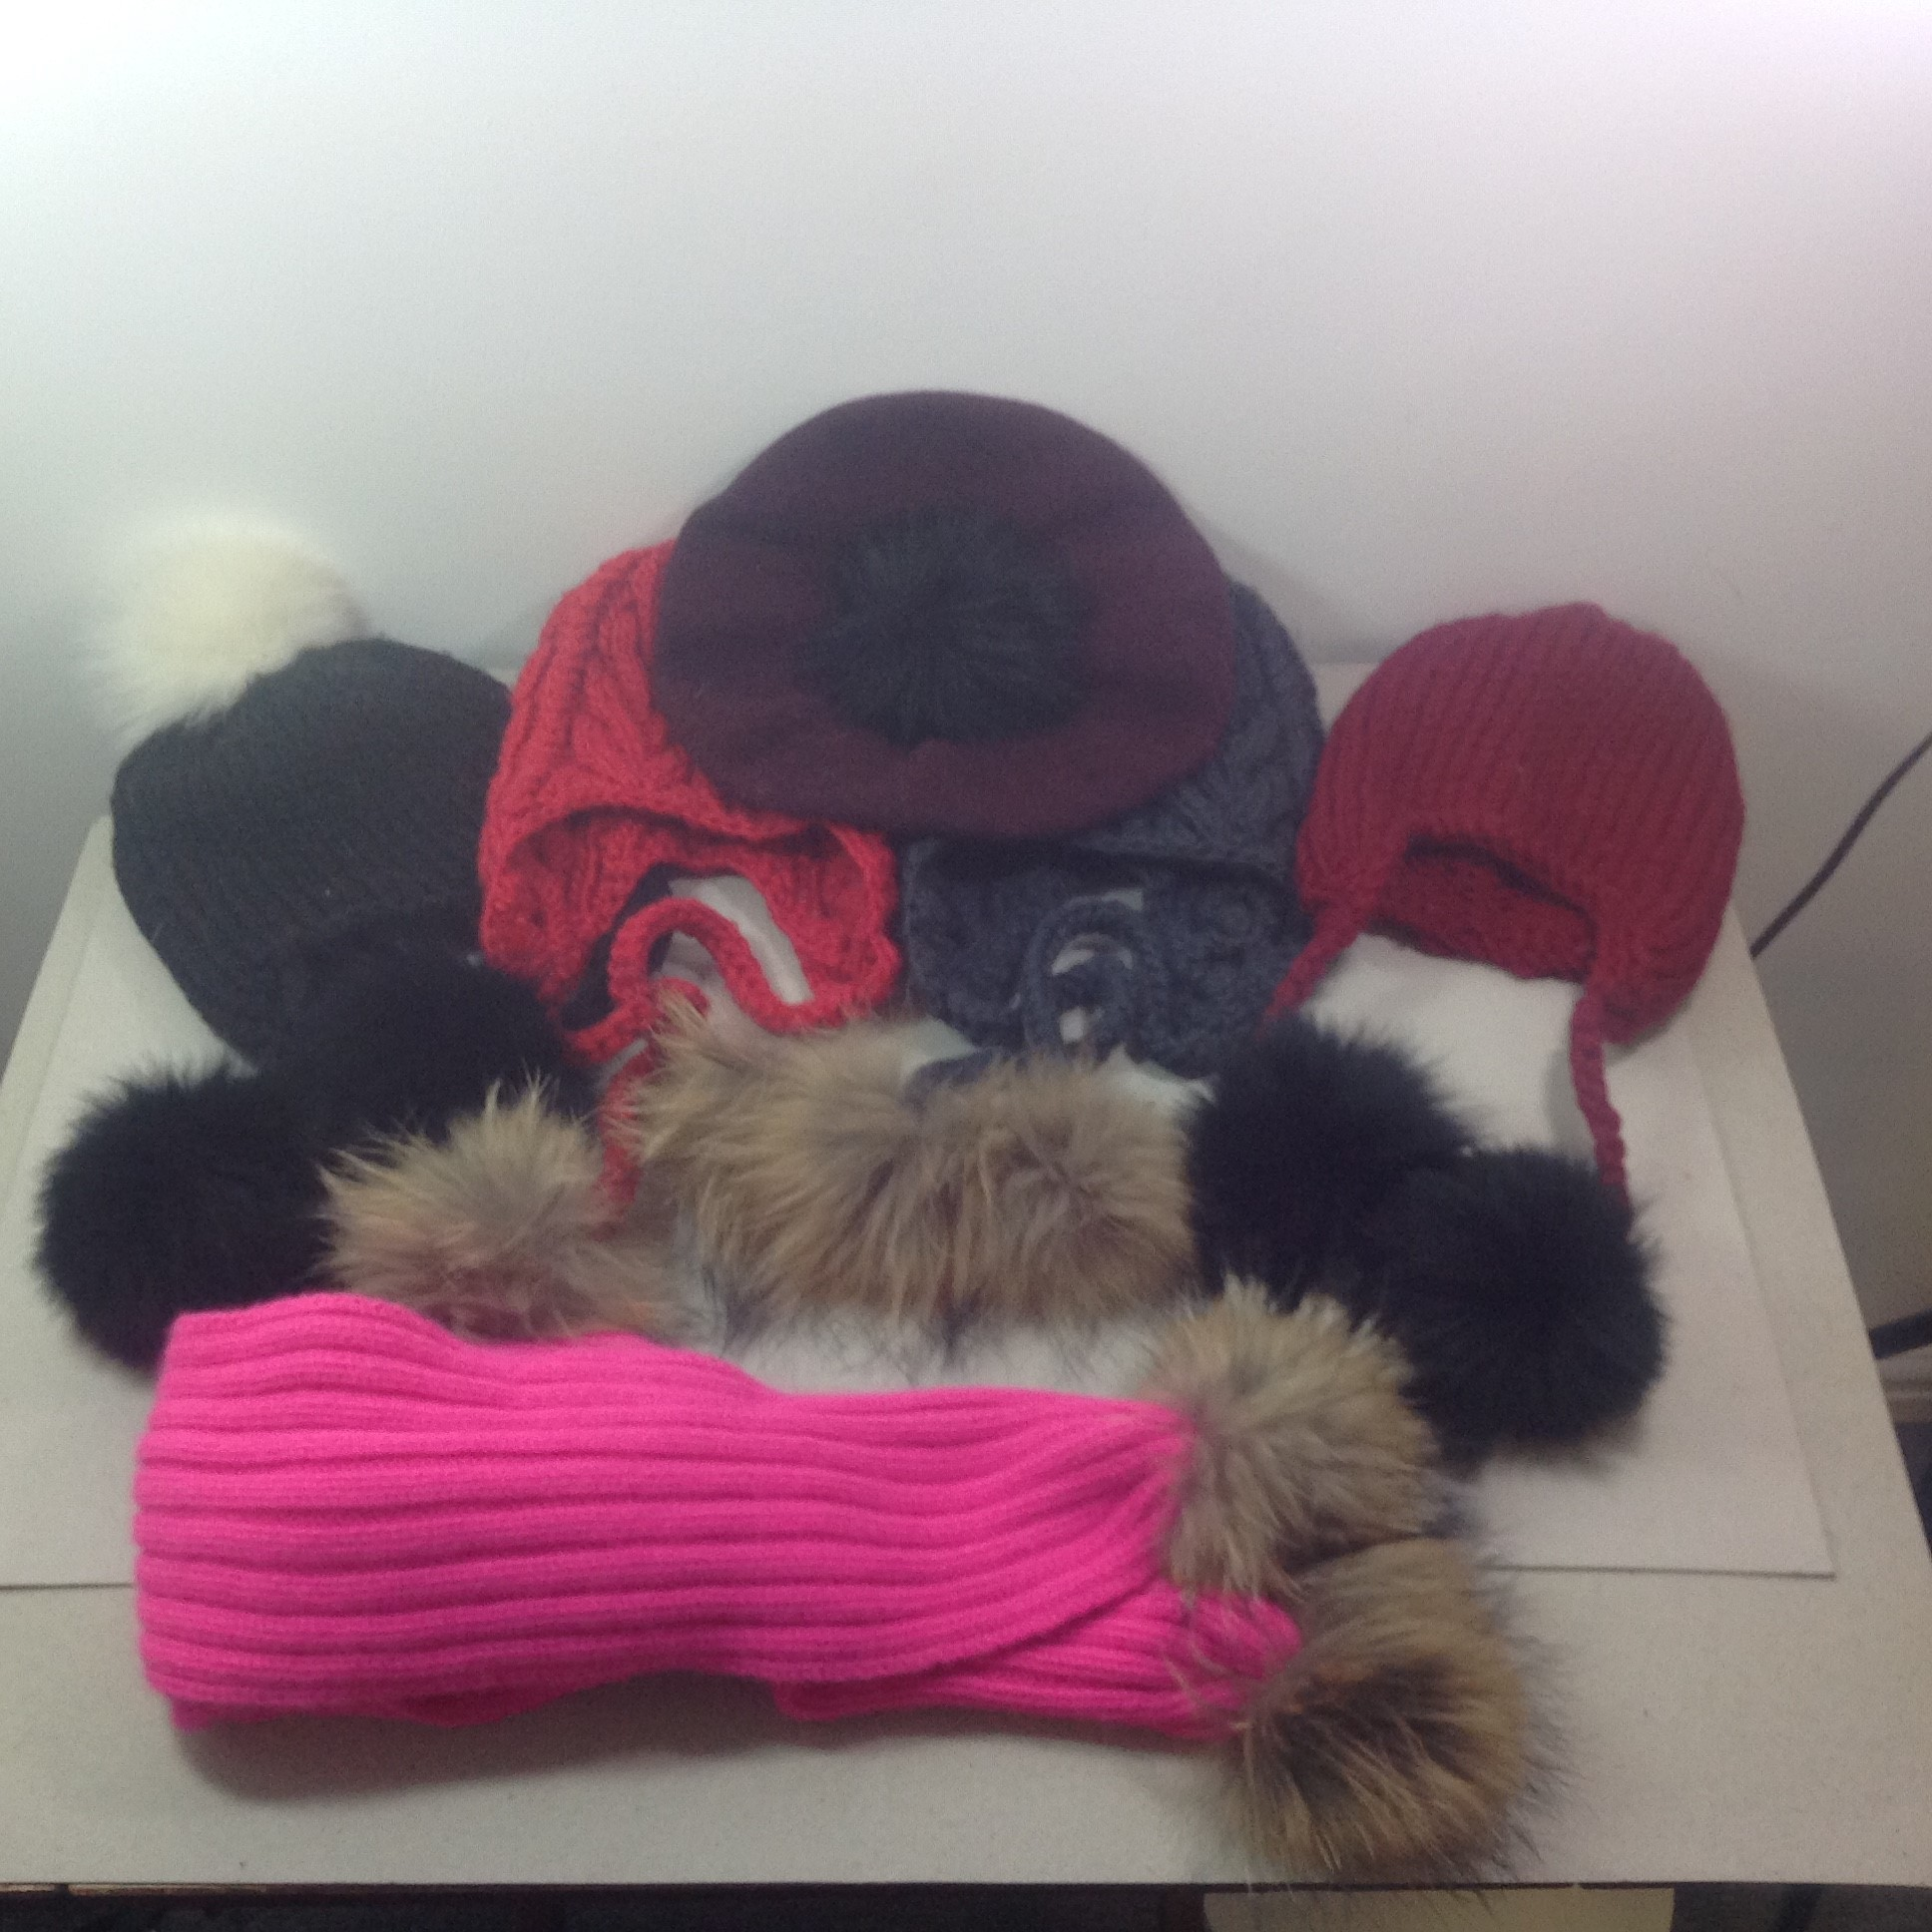 Job Lot Of Sommerville Hats 1 Black & 1 Pink,  I Red Beret &13 Acrylic Hats, 1 Bright PInk Scarf All With Pom Poms